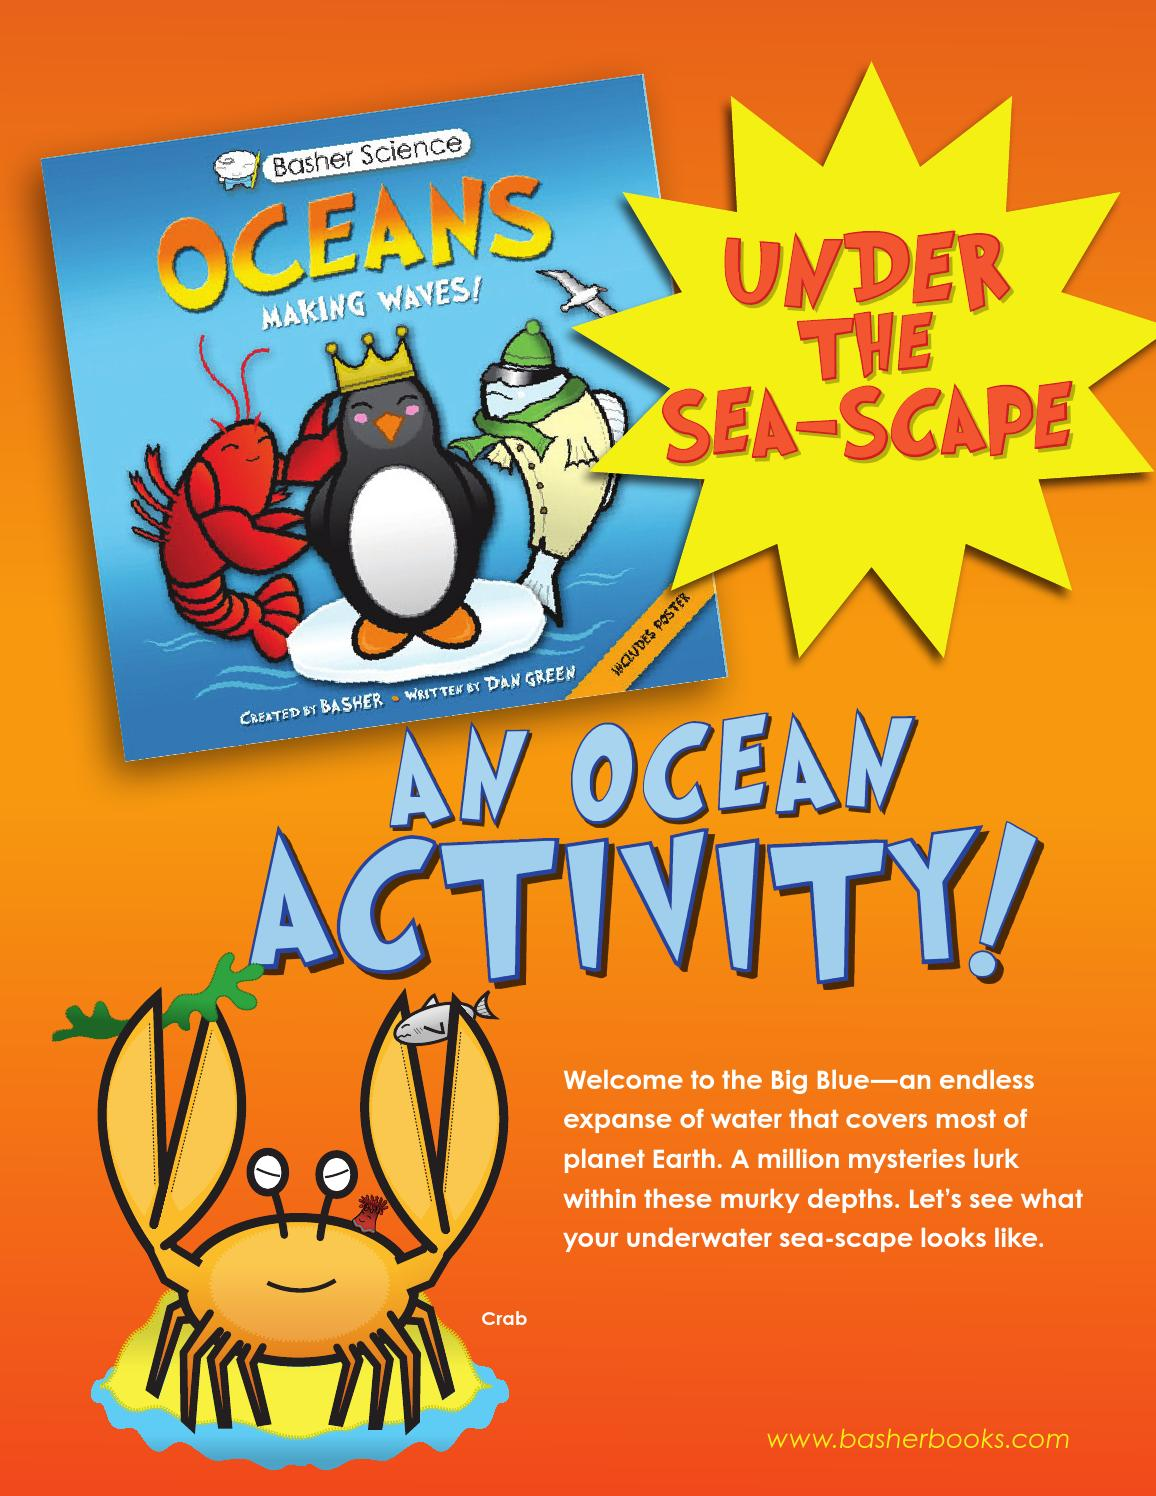 Basher Science: Oceans_Under the Seascape Activity by Kingfisher -  Macmillan - issuu